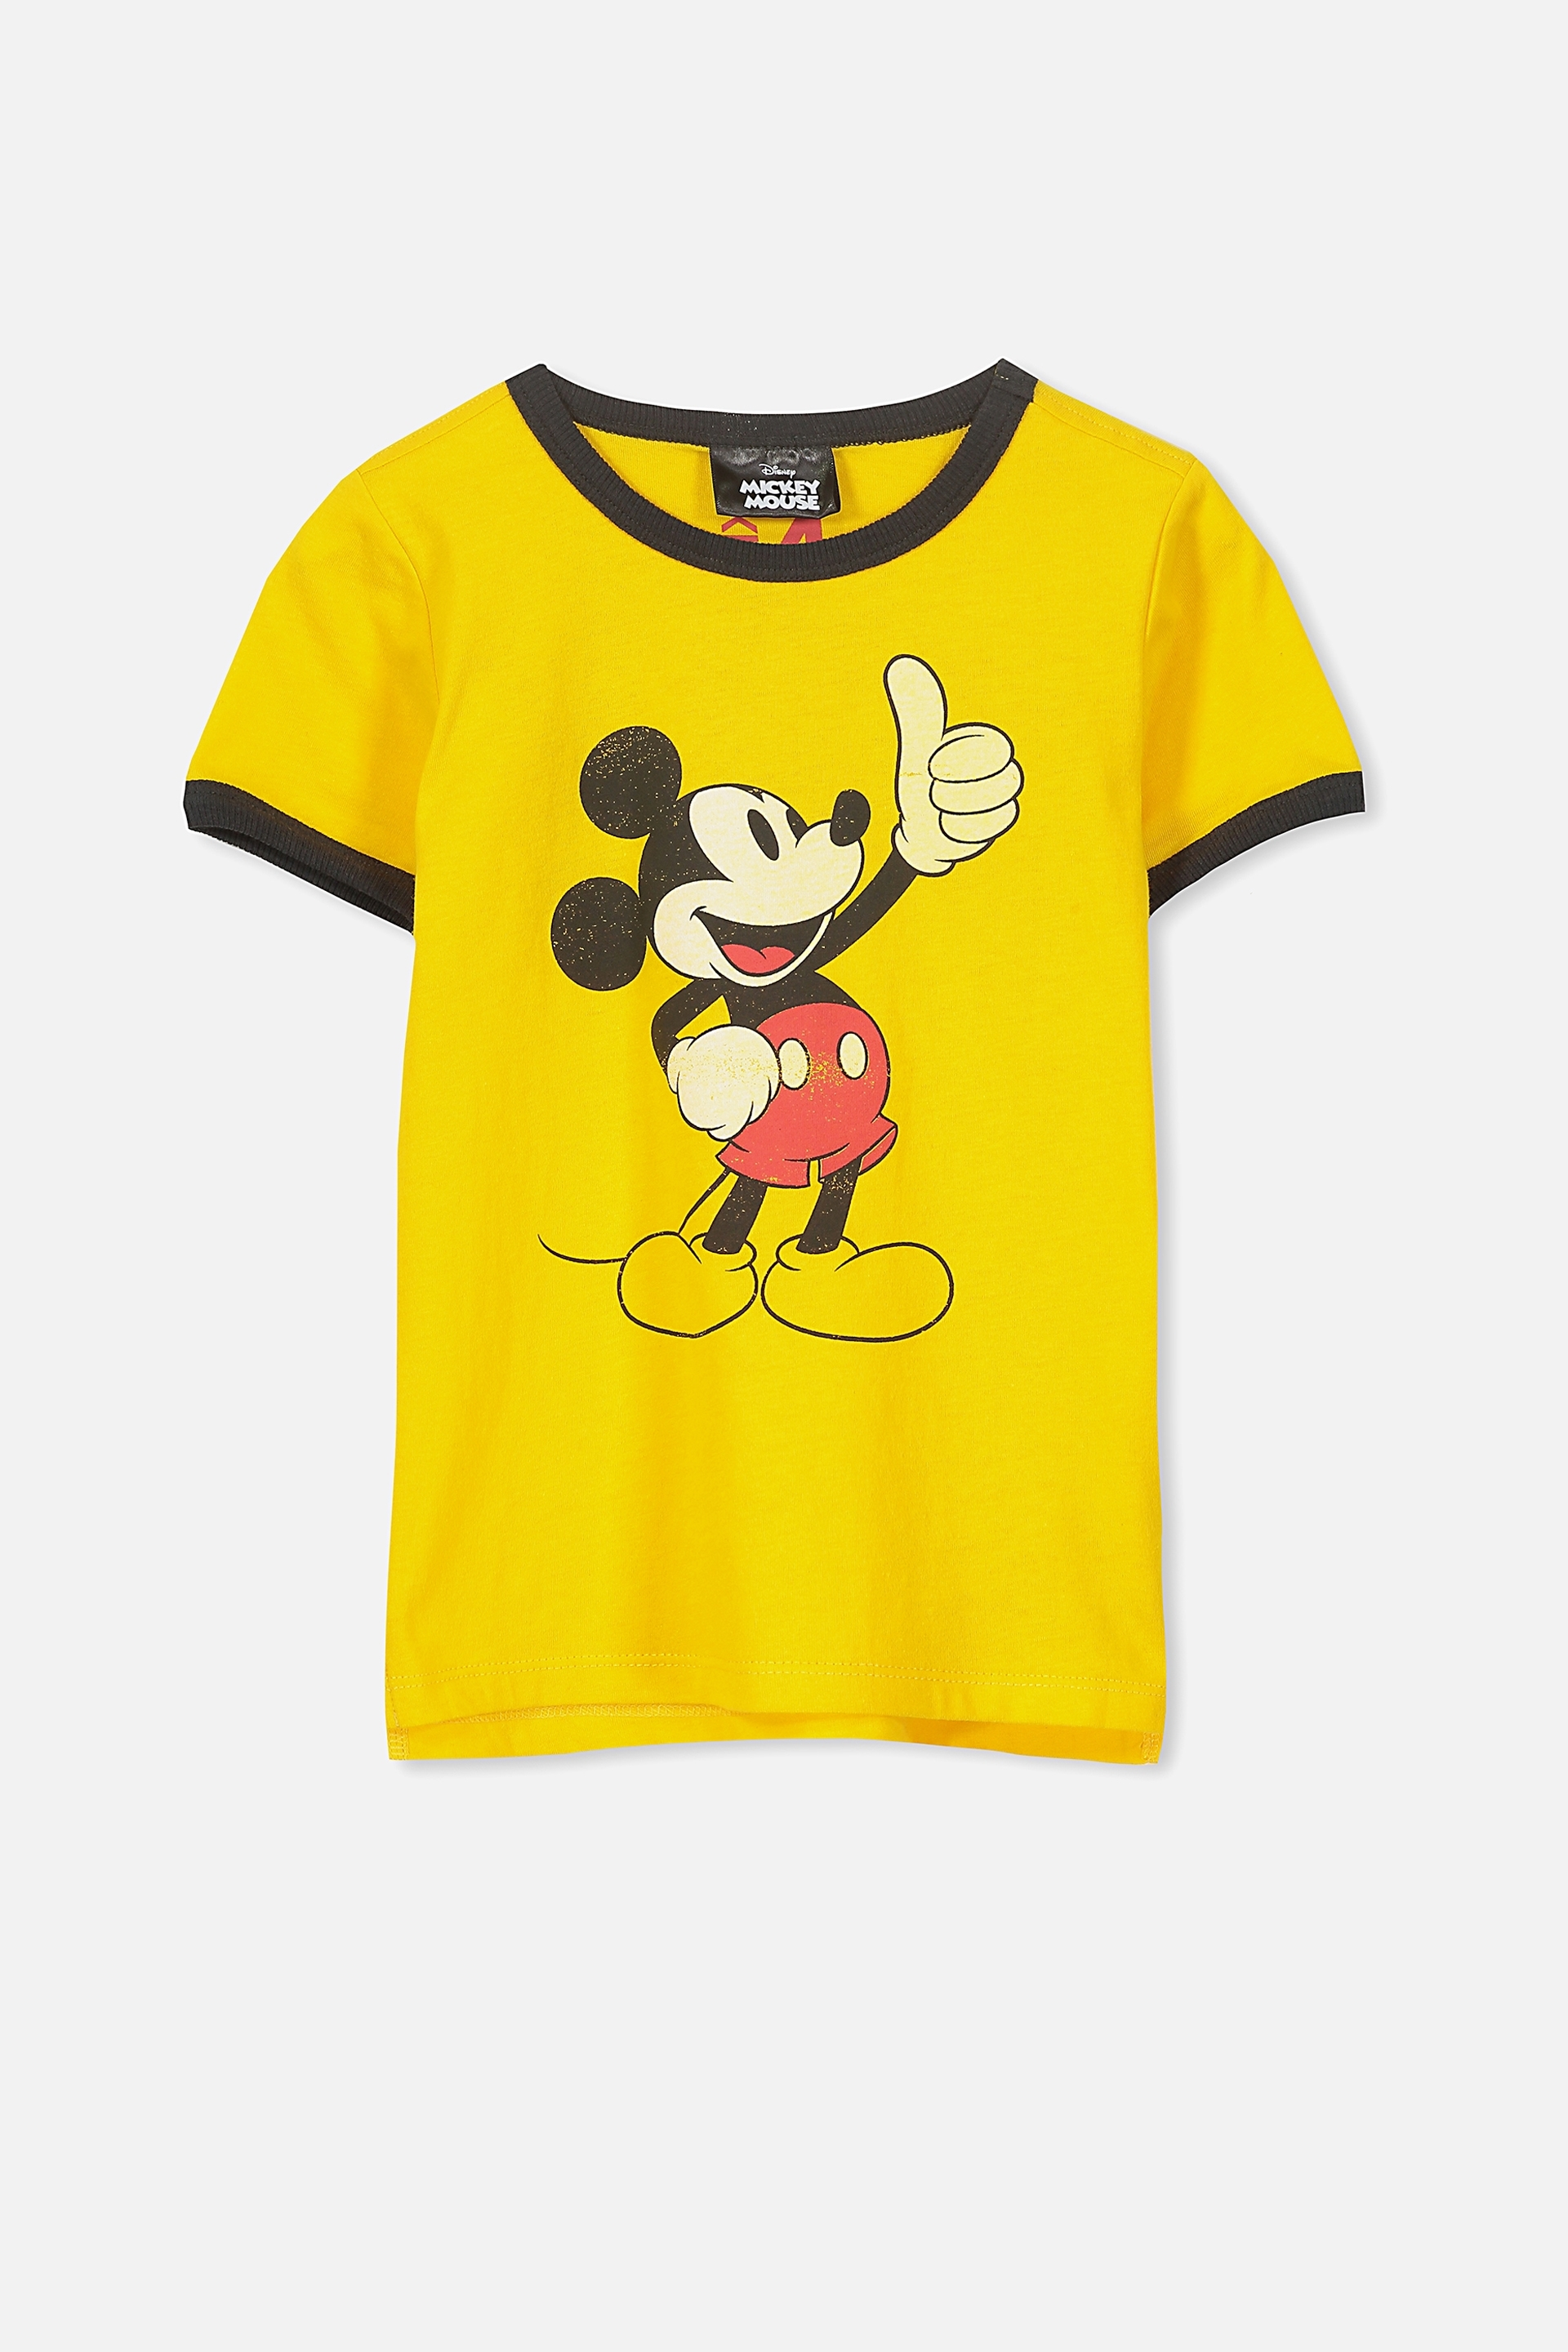 Cotton On Kids  Mickey Mouse Yellow Ringer Tee  Dungaree yellowthumbs up mickey